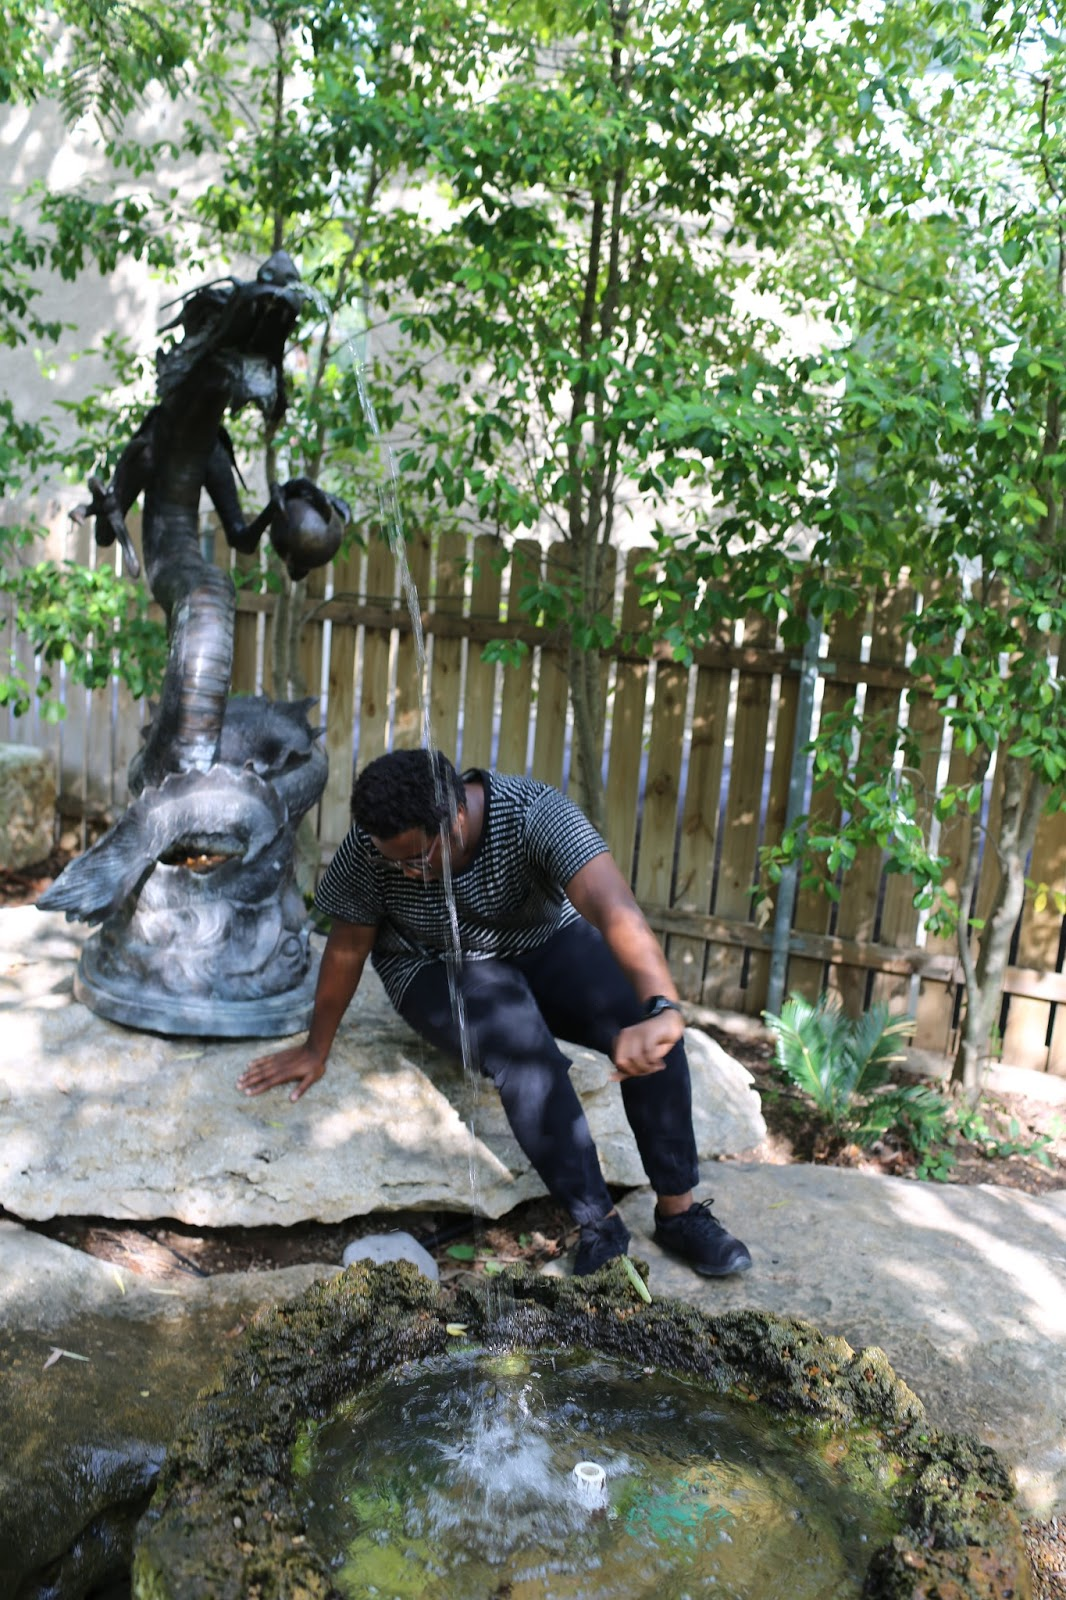 Dragon Park; Hidden Gems in Dallas: #OnlyLocalsKnow